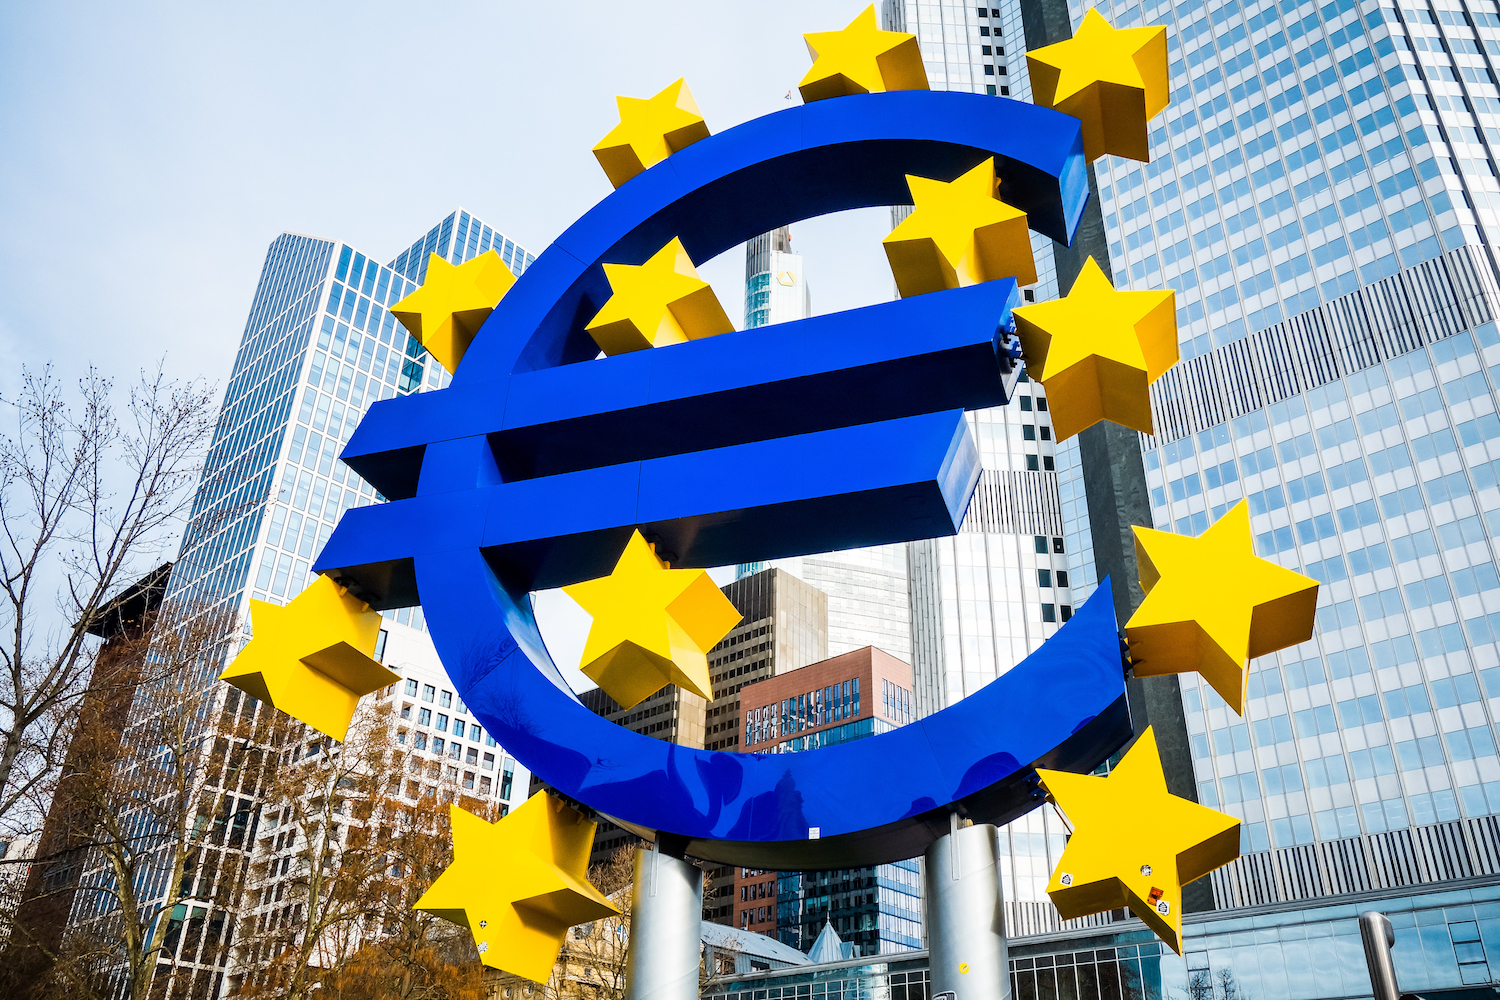 EU Finance Commissioner Vows New Rules on Crypto, Libra Stablecoin - CoinDesk